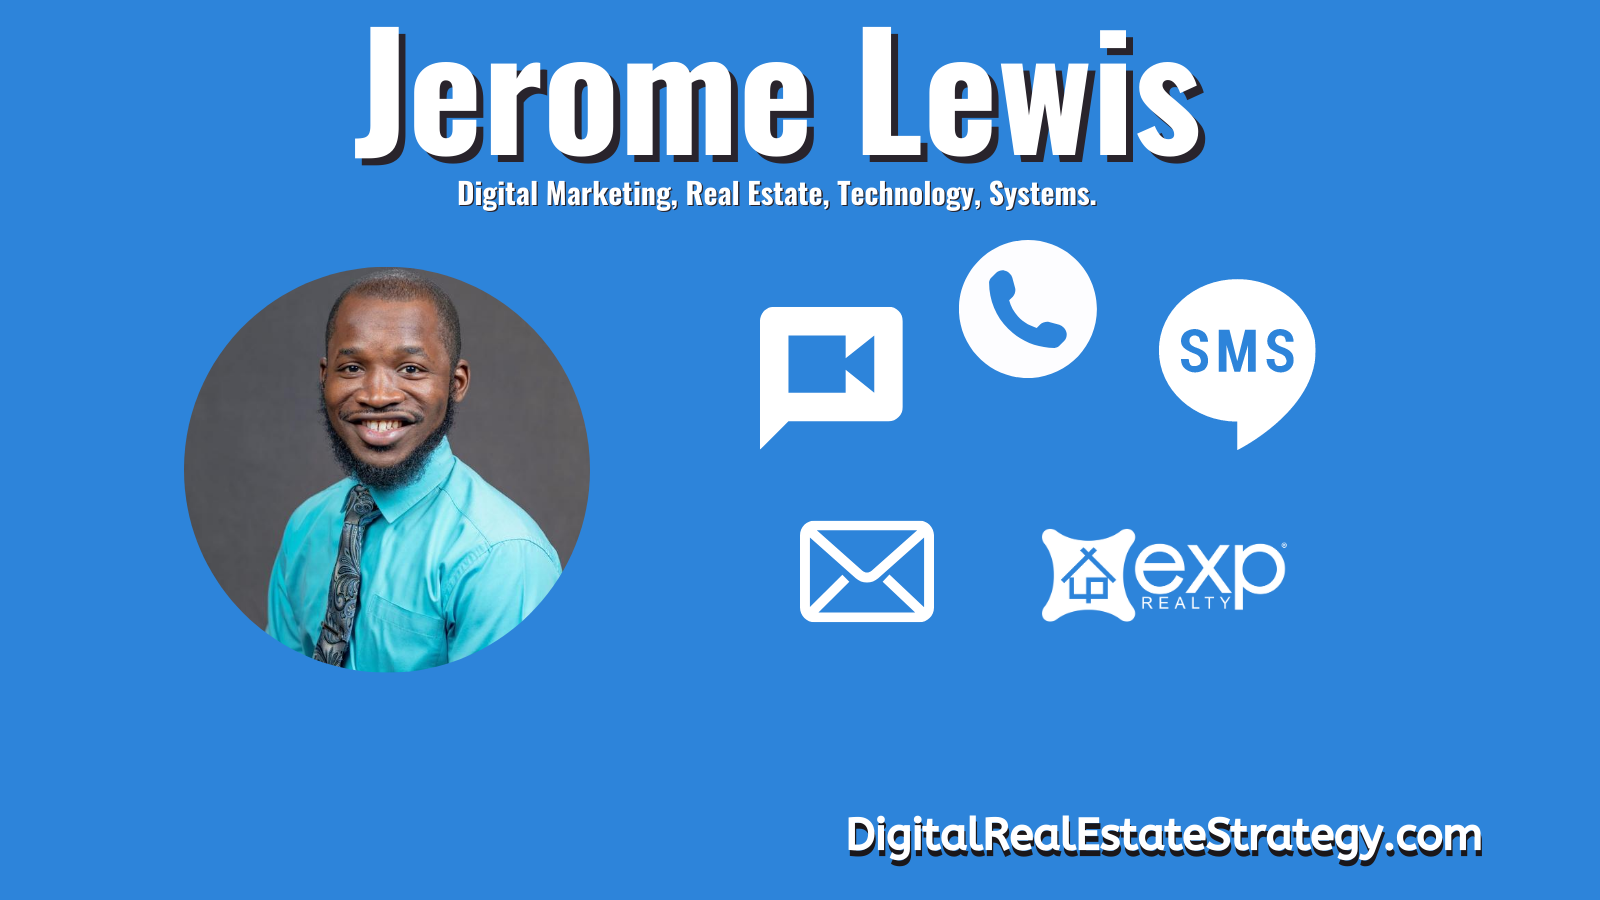 Contact Jerome Lewis - eXp Realty - Philadelphia - Digital Real Estate Strategy